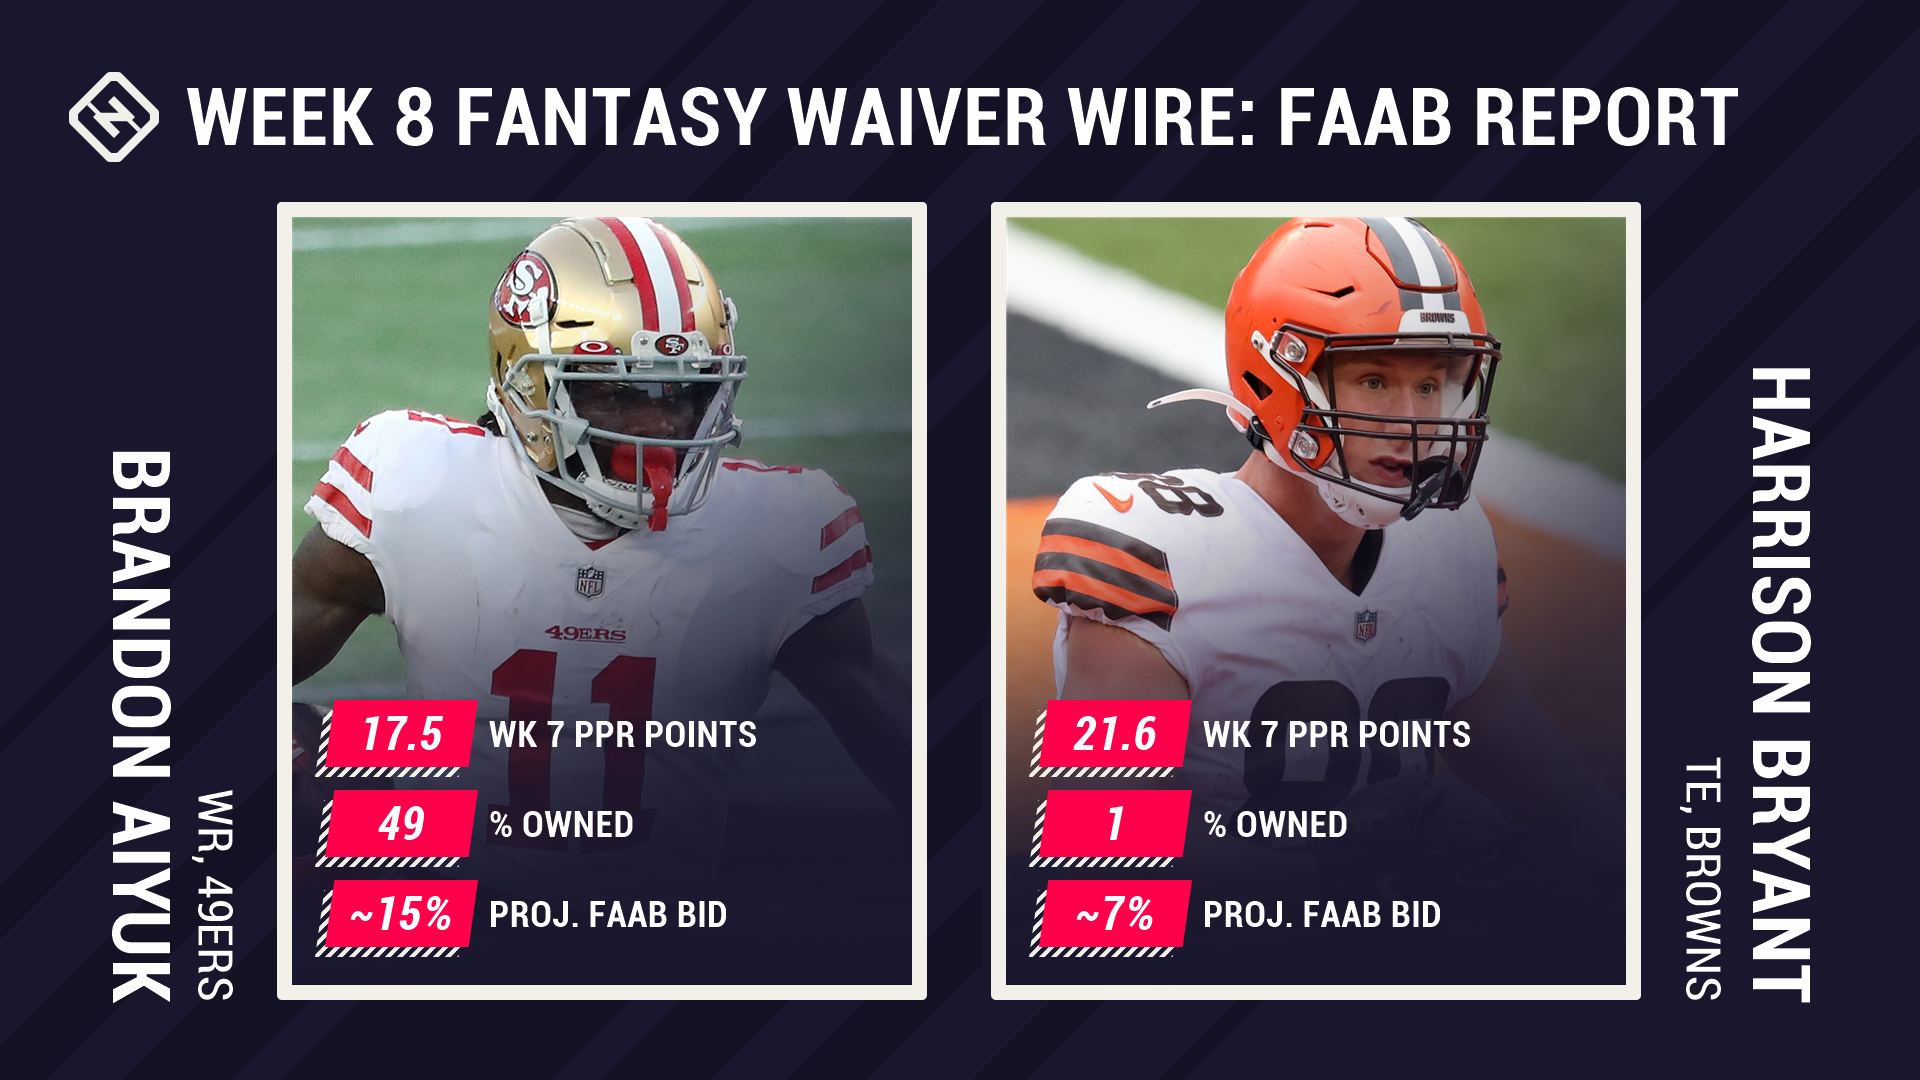 Fantasy Waiver Wire FAAB Report for Week 8 pickups free agents